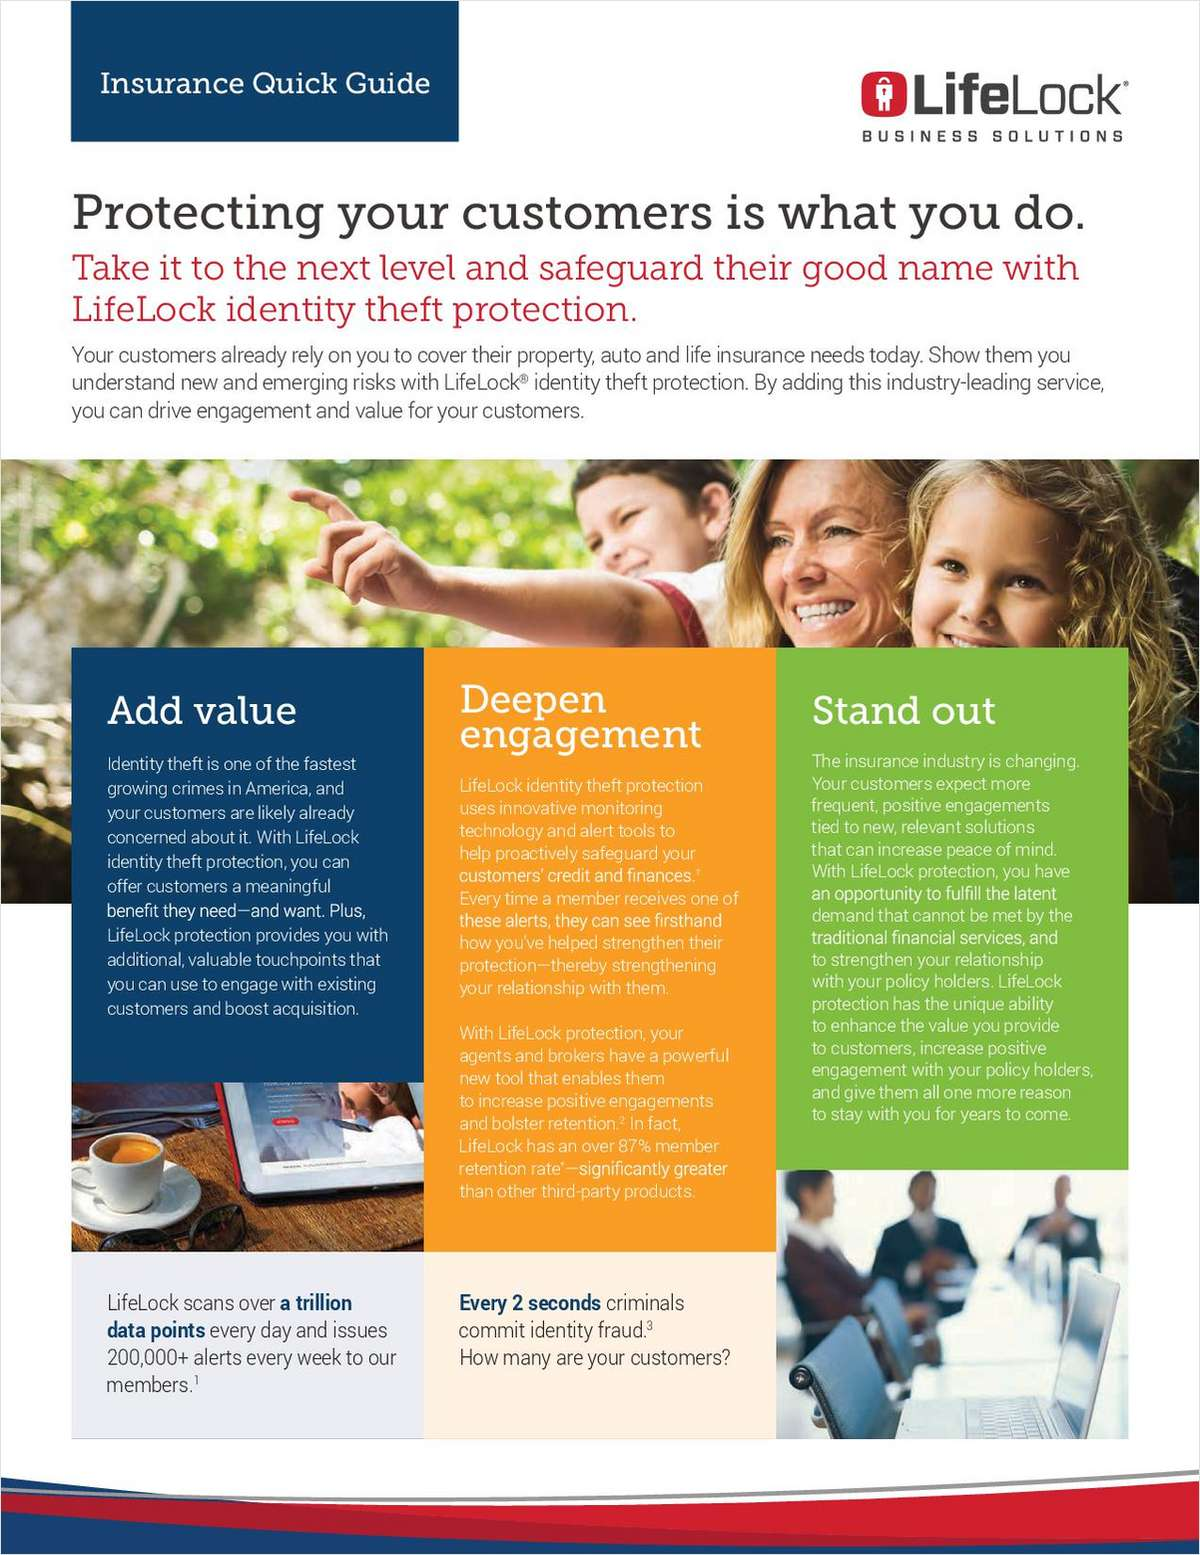 Protecting Your Customers is What You Do